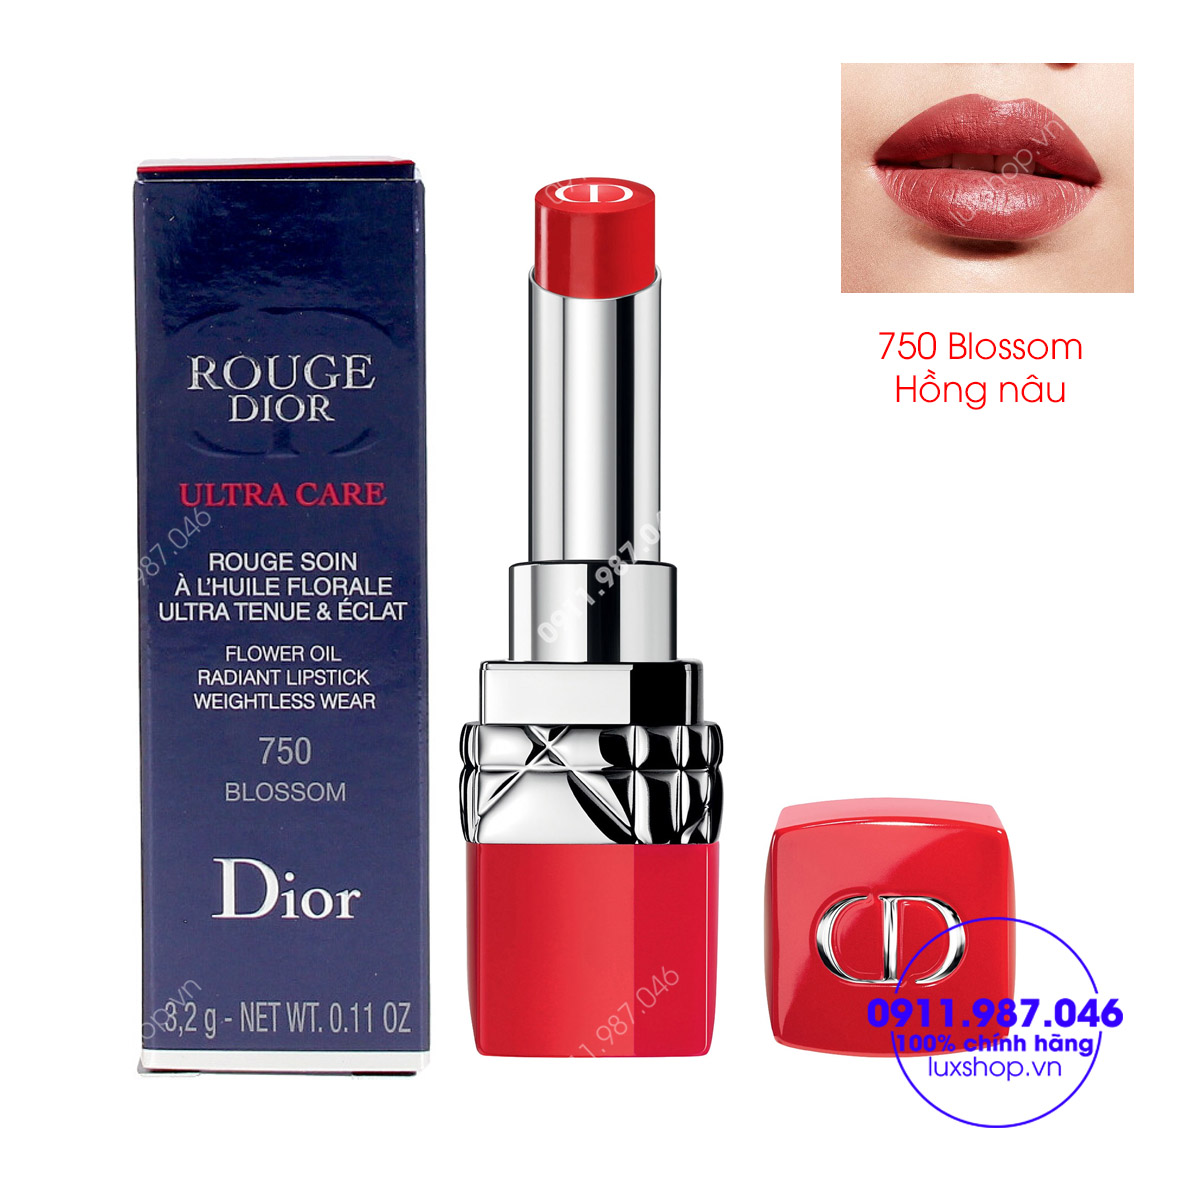 son-moi-dior-rouge-ultra-care-750-blossom-mau-hong-nau-chinh-hang-phap-vo-do-l98877